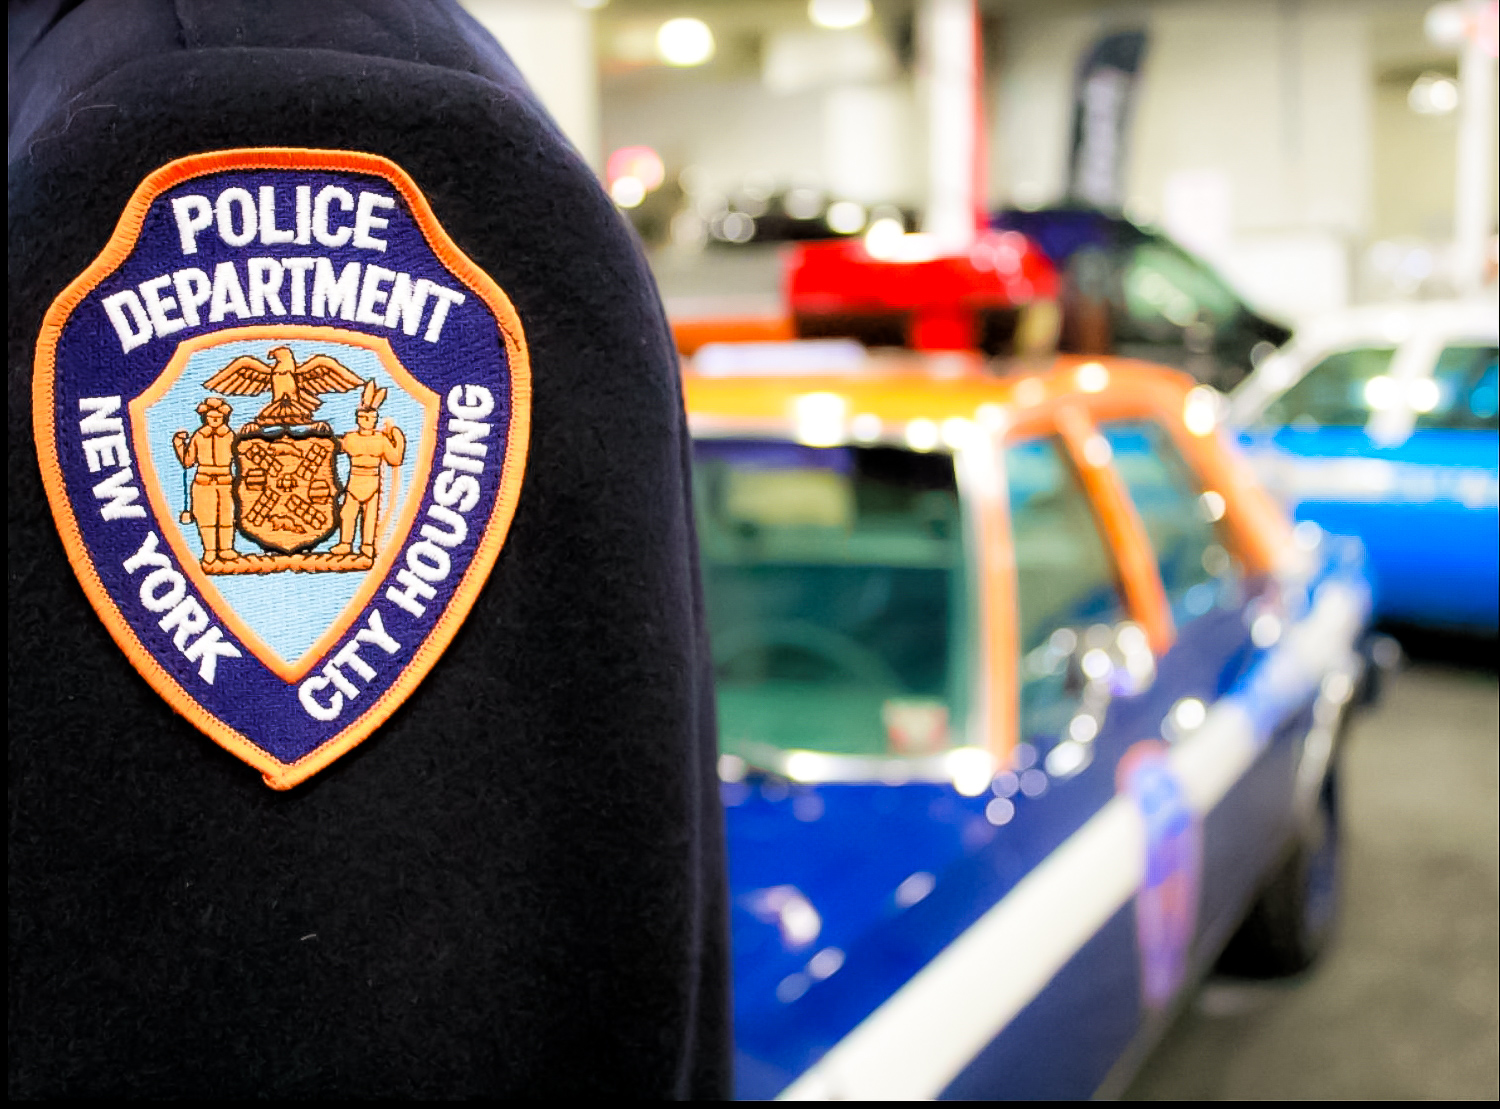 PLYMOUTH DIPLOMAT – Once upon a time, the NYPD's housing bureau had its own fleet of cars.